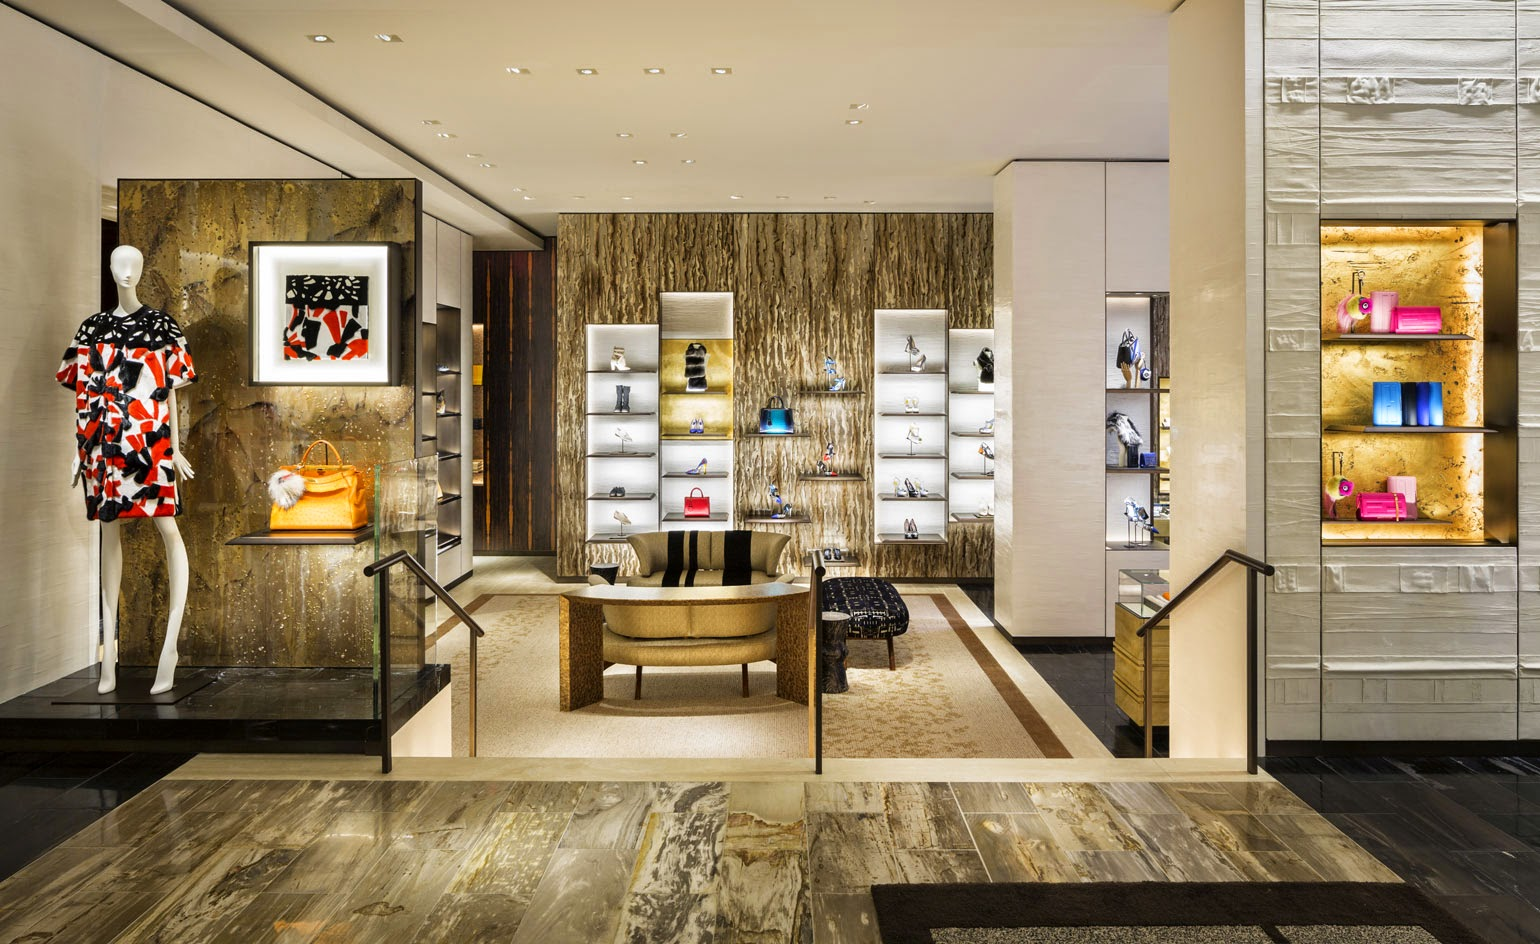 3997219b628 http://www.wallpaper.com/fashion/retail-directory-peter-marinos-new-fendi -flagship-celebrates-the-luxury-labels-roman-roots/8402